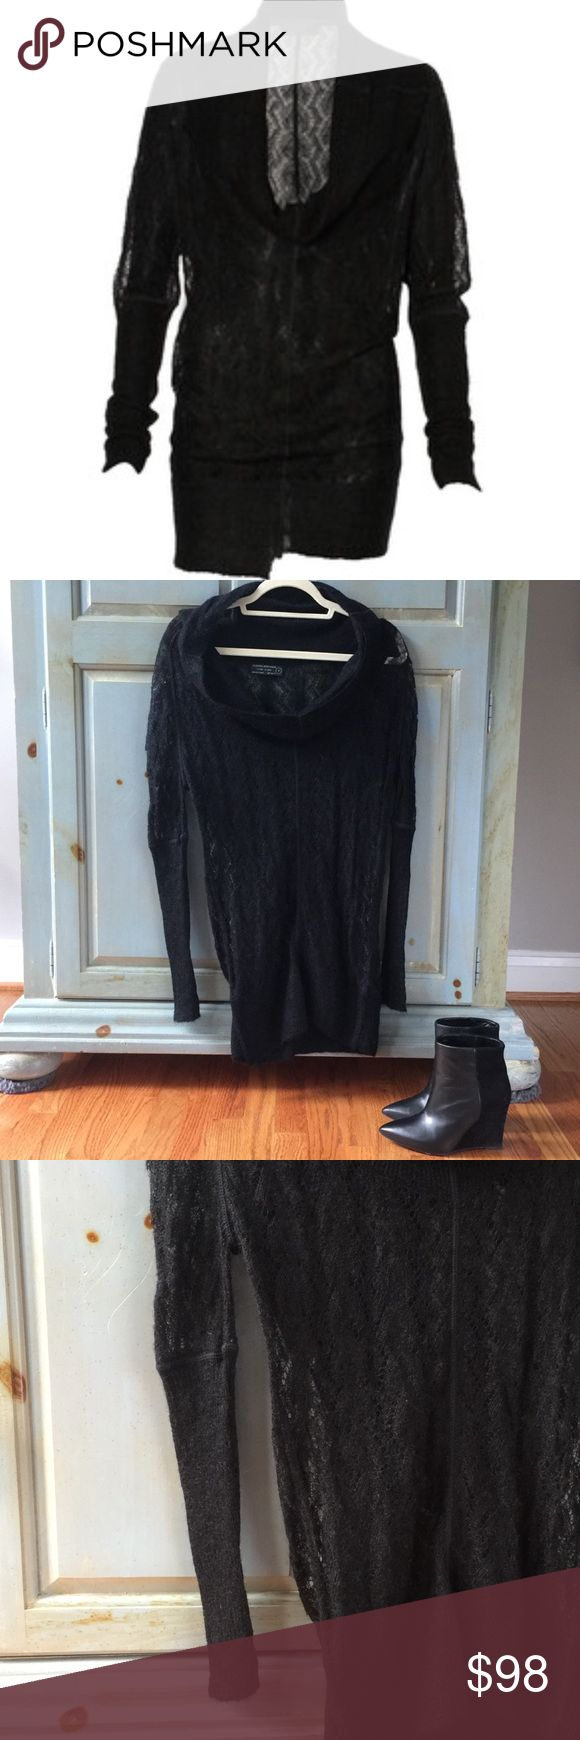 All Saints Bryce Jumper Dress in Black NWOT All Saints black lace knit, extreme cowl neck jumper dress with full length sleeves. The Bryce jumper features and uneven rib hem, exposed seams, unlined. Size UK8/US4. Styled with the Muubaa Neruda biker jacket in Valentine Grape (also for sale in my closet!) and the All Saints Manifesto boots in black. All Saints Dresses Mini